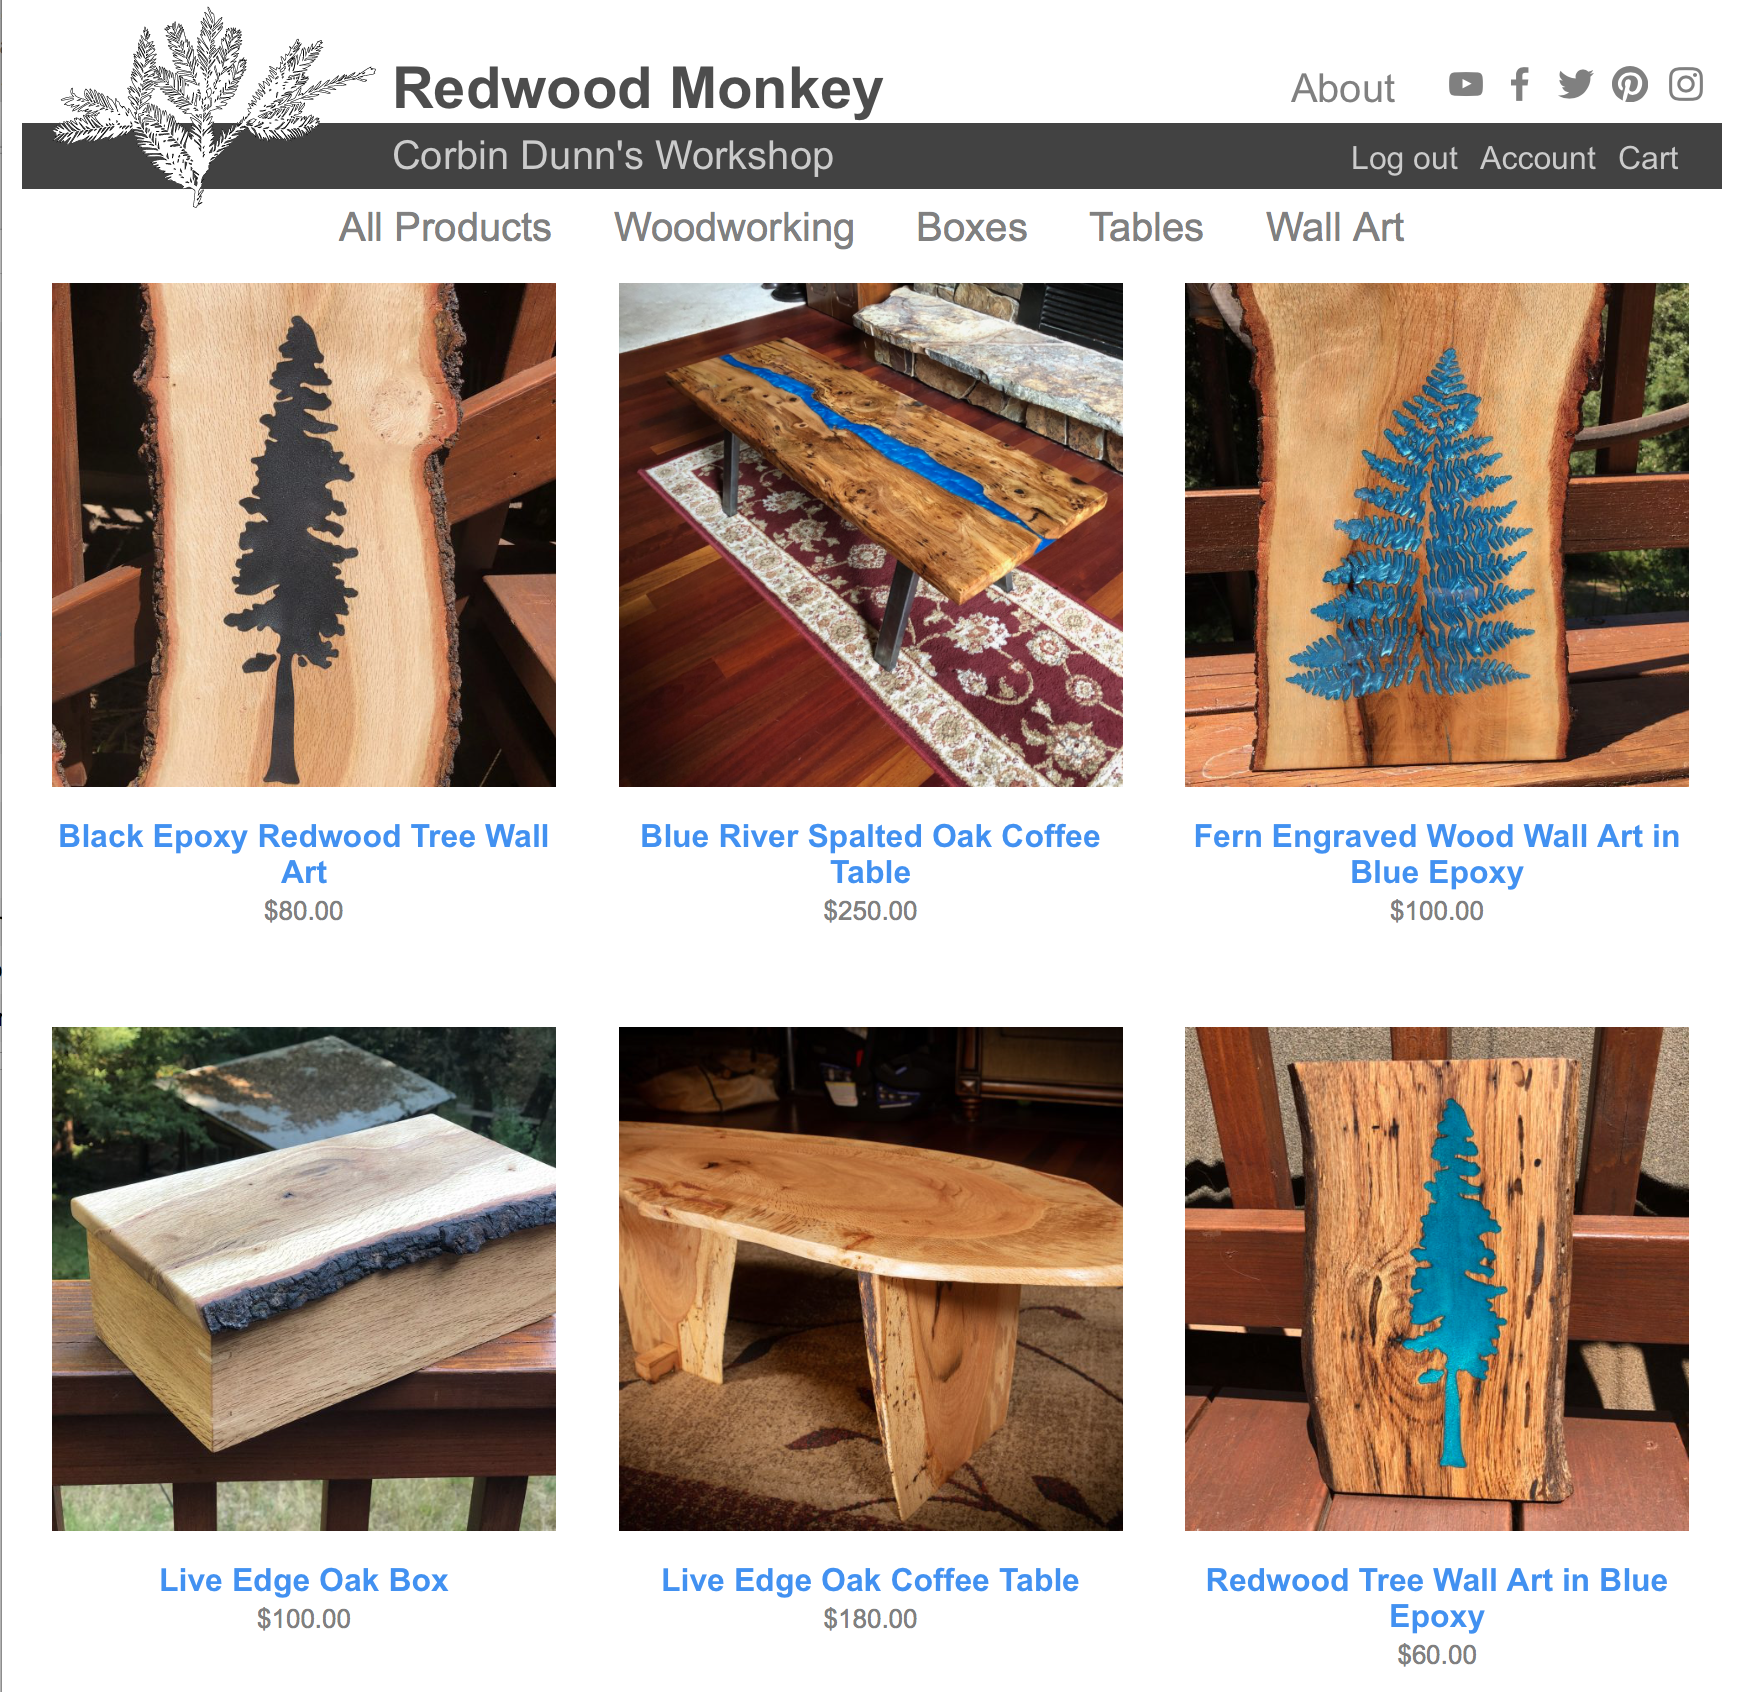 Redwood monkey workshop screenshot